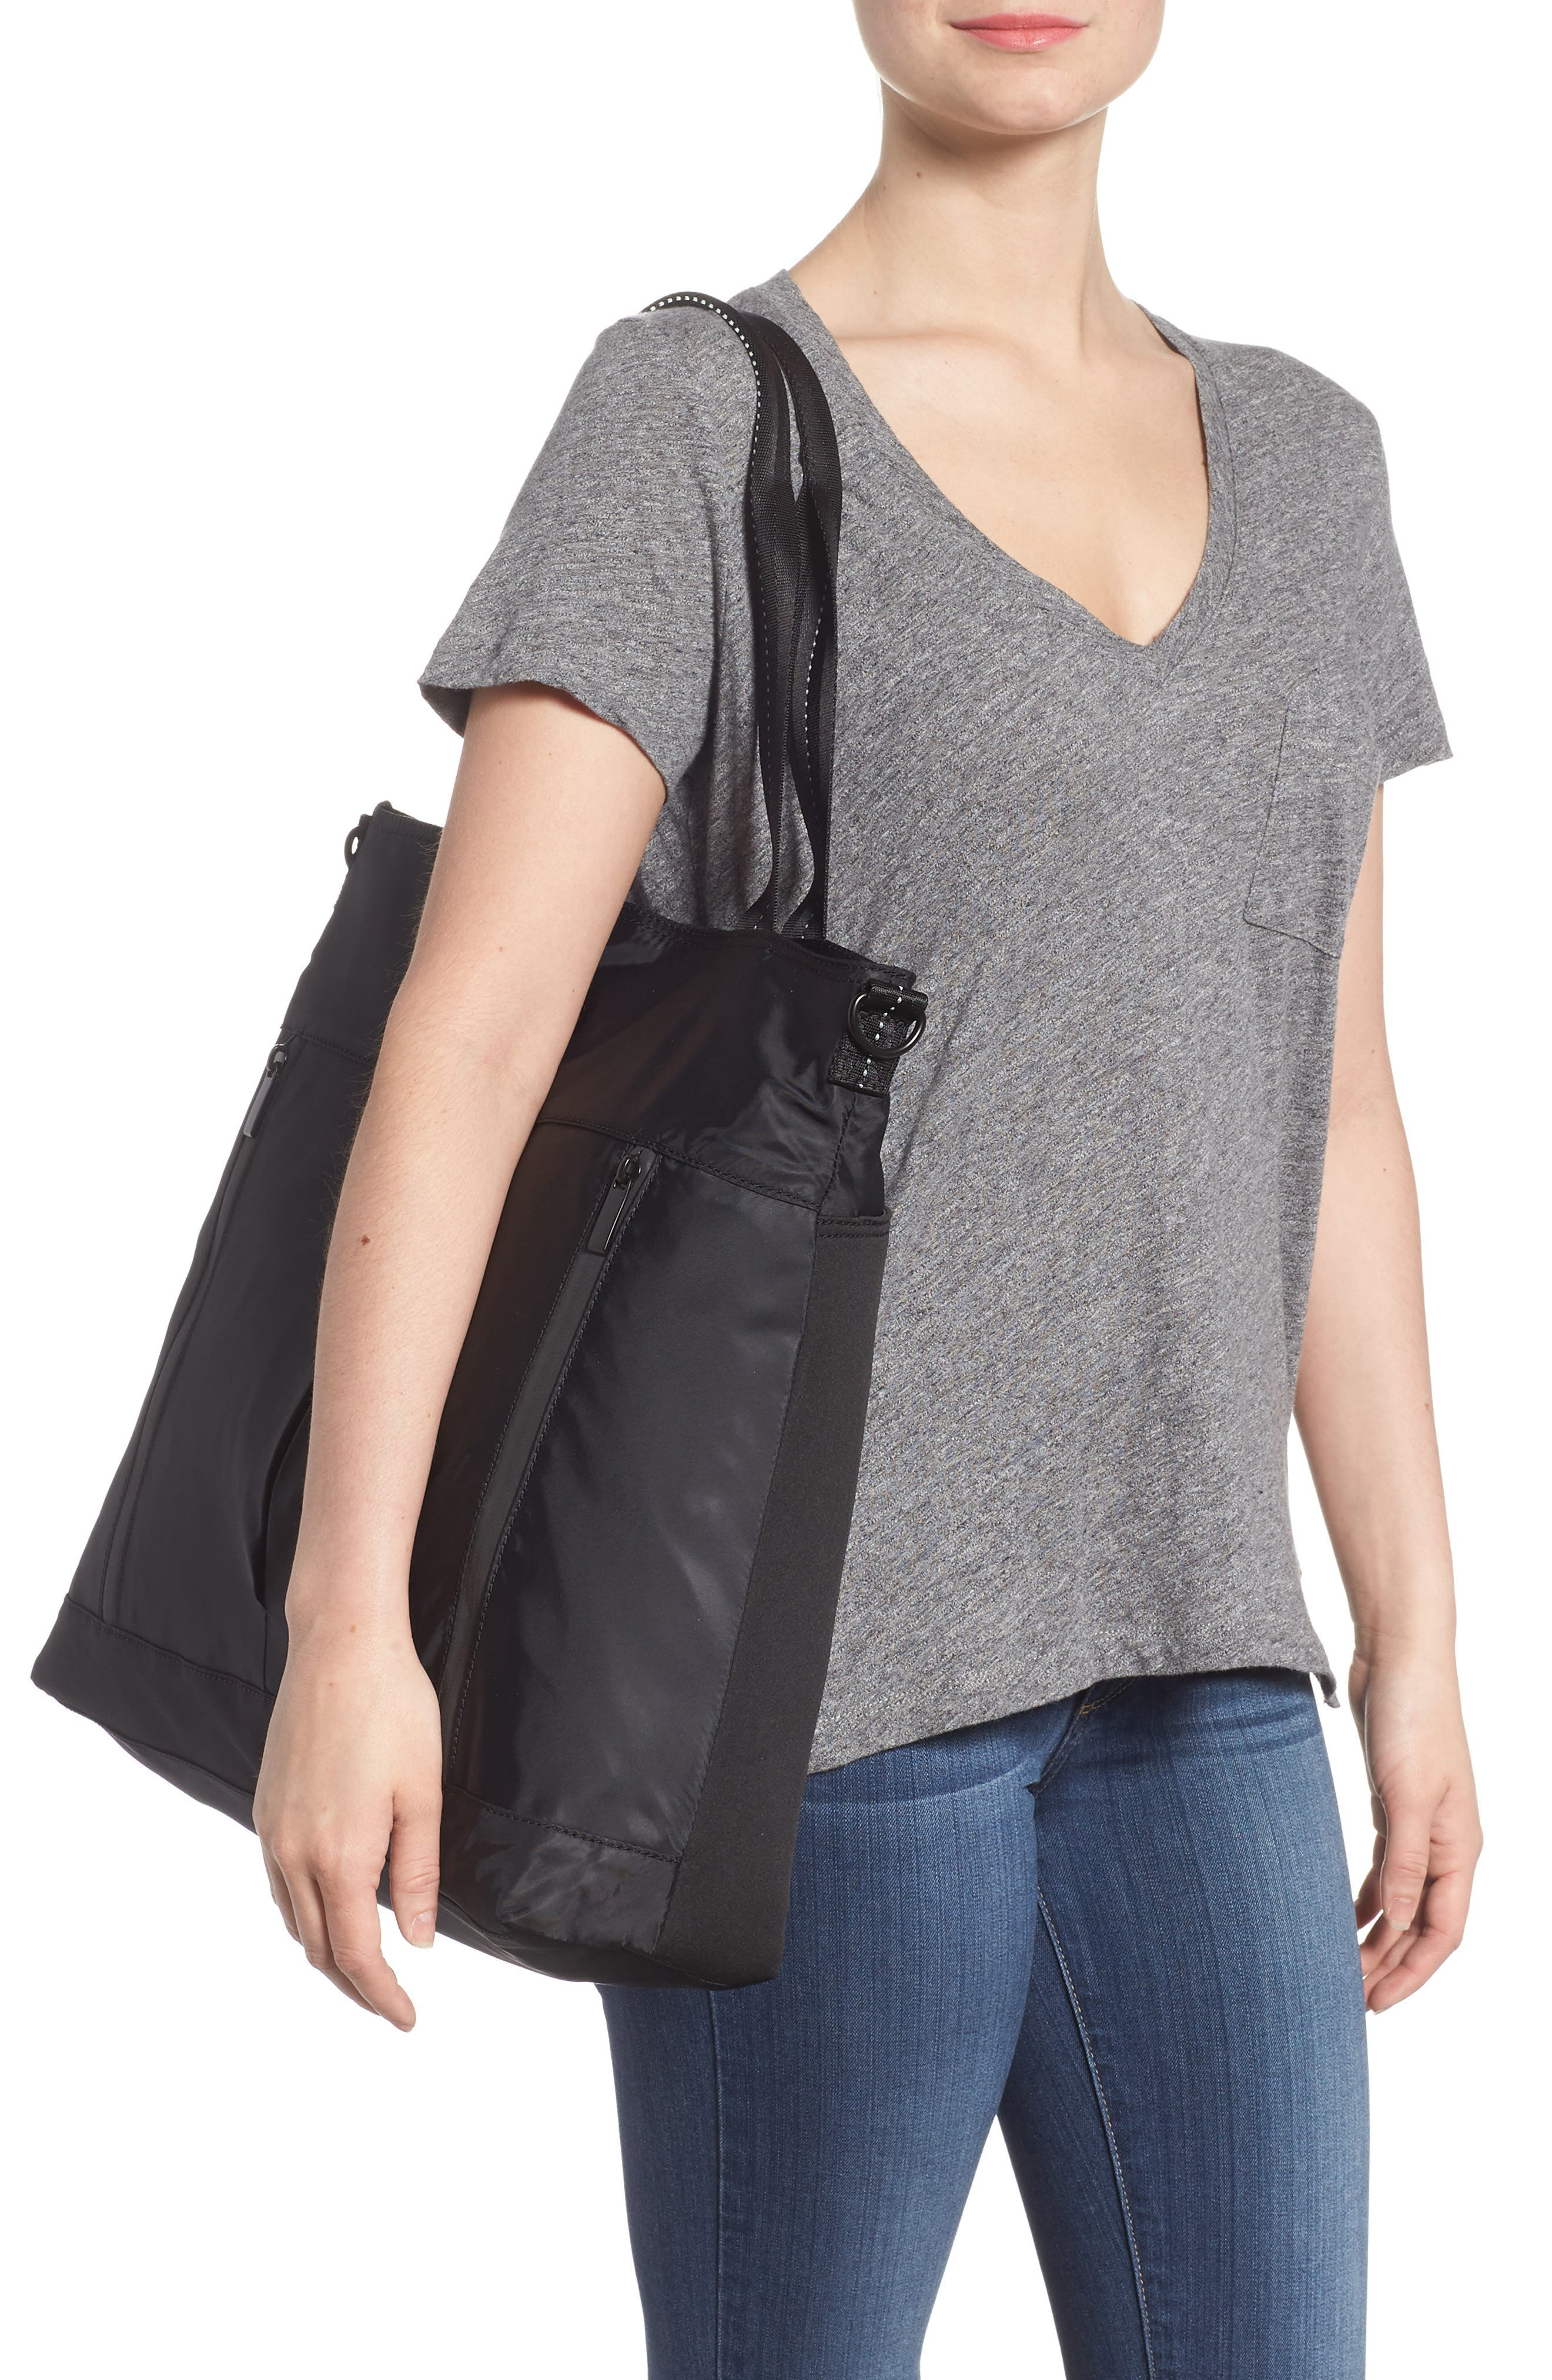 244ad3a0a5f2 Women's Gym Bags Workout Clothes & Activewear | Nordstrom